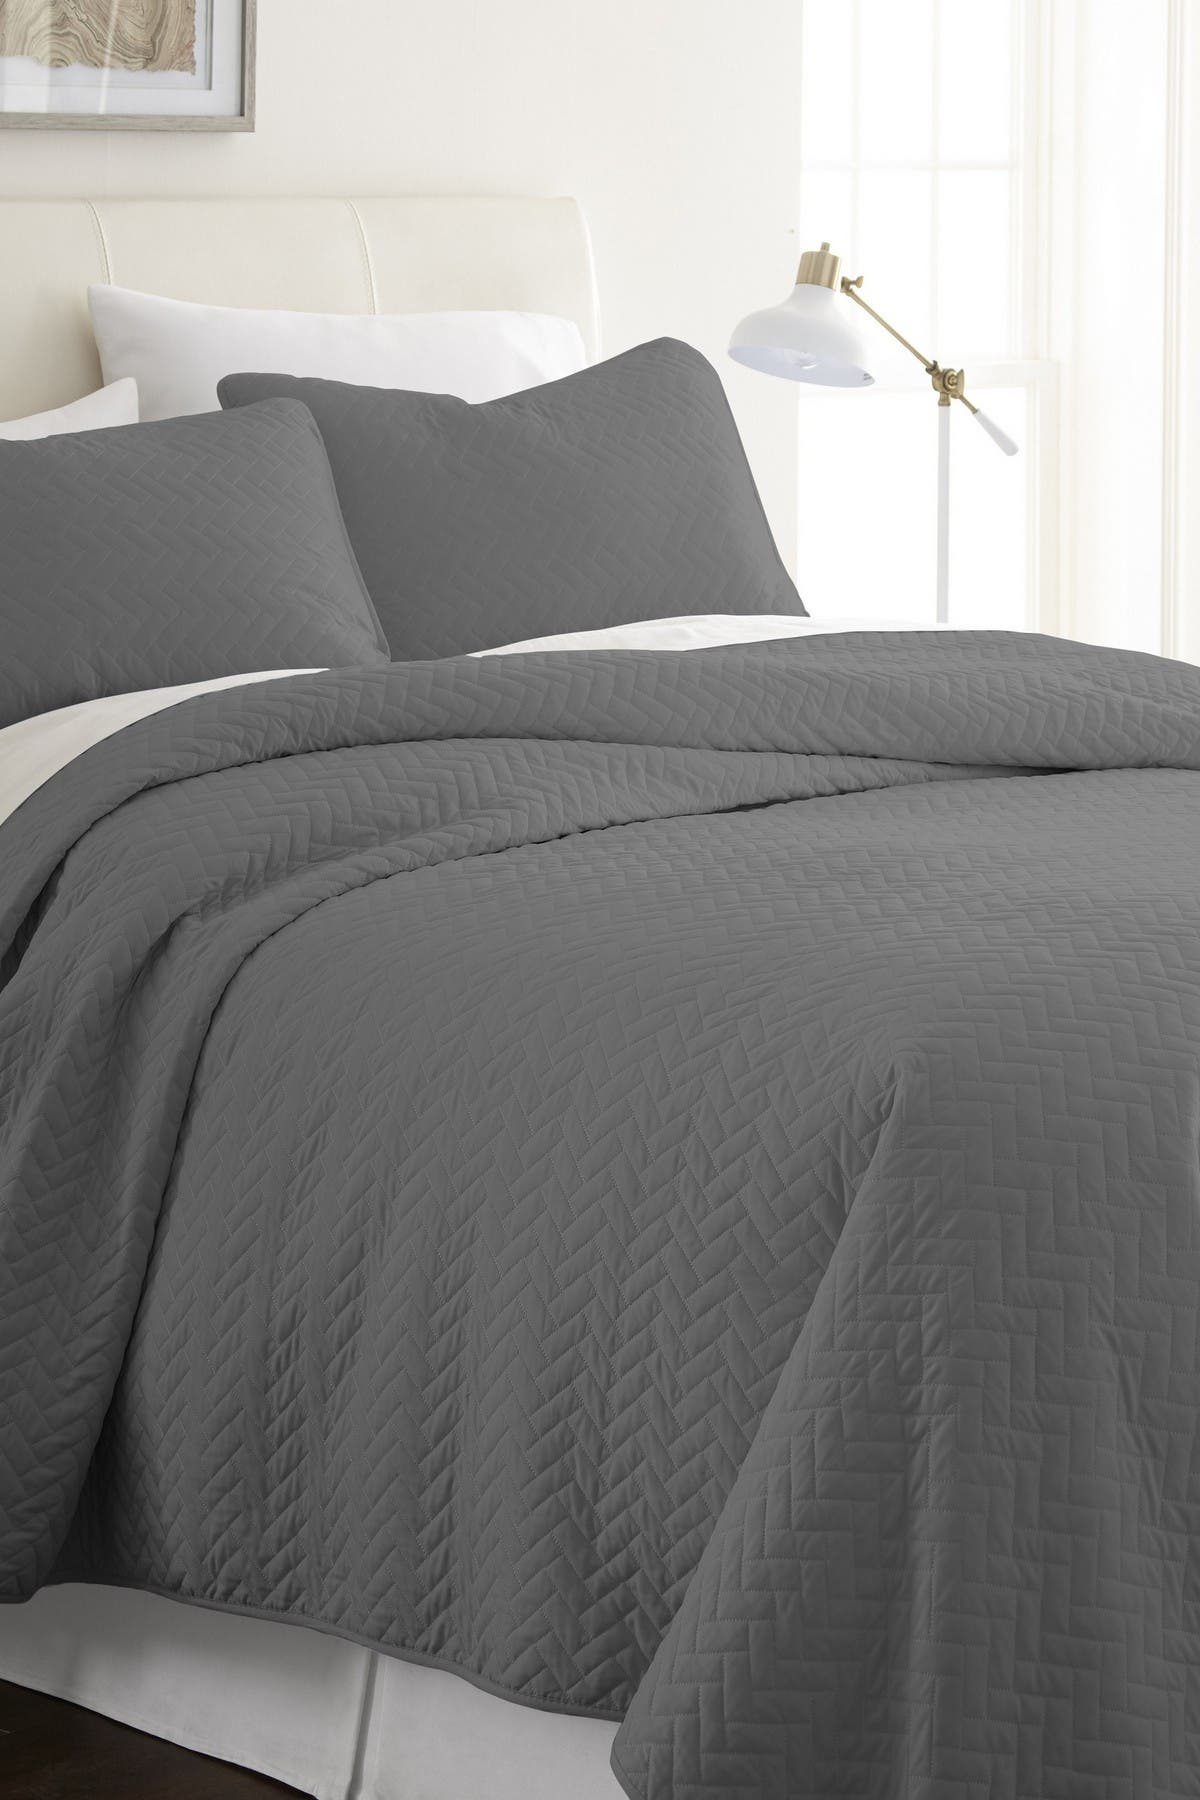 Ienjoy Home Home Spun Premium Ultra Soft Herring Pattern Quilted King Coverlet Set Gray Nordstrom Rack